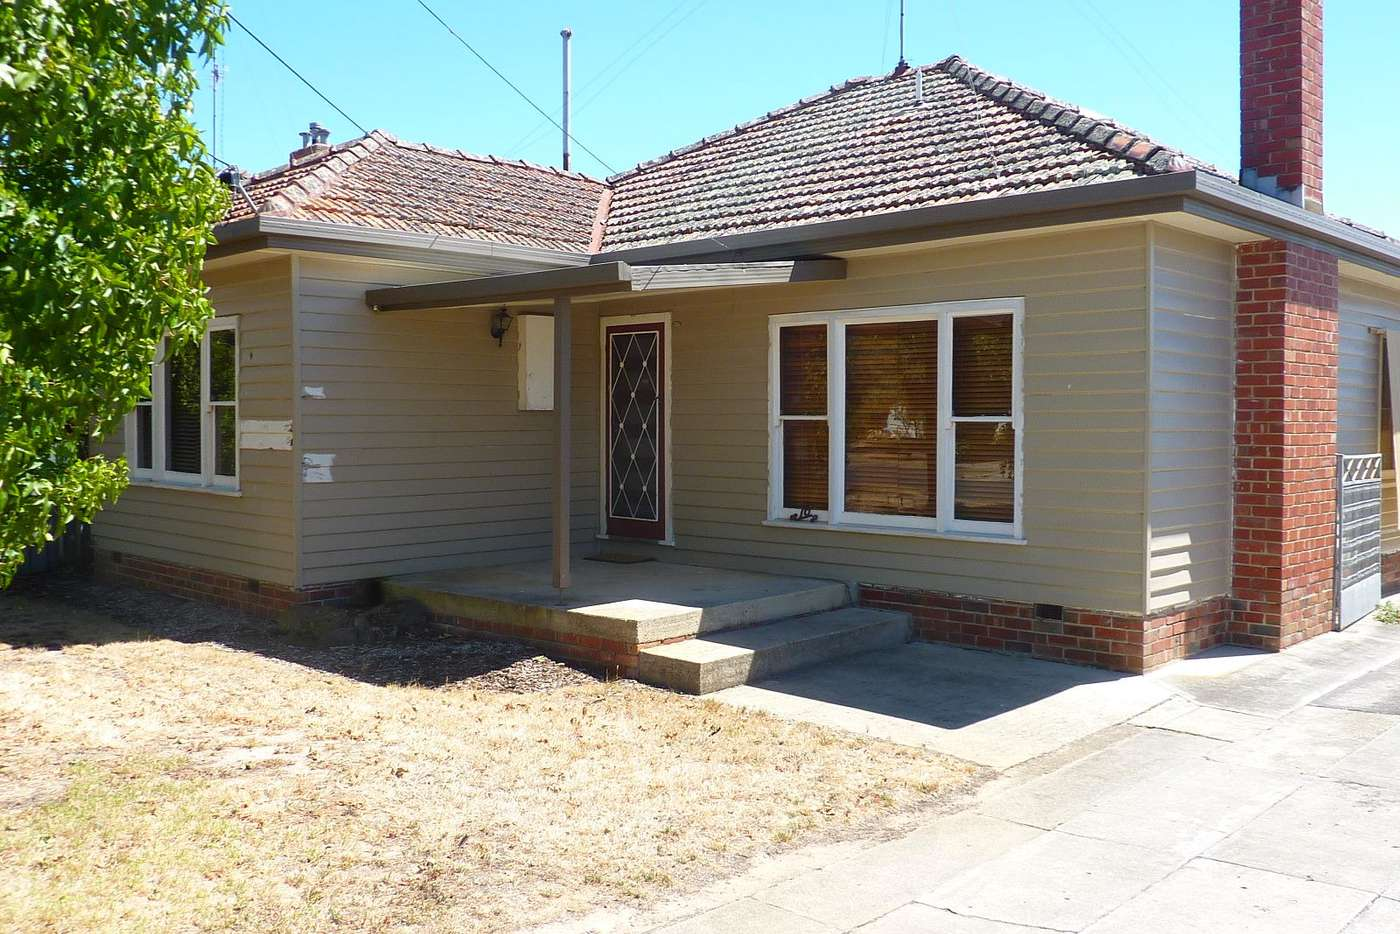 Main view of Homely house listing, 16 College Street, Wendouree VIC 3355